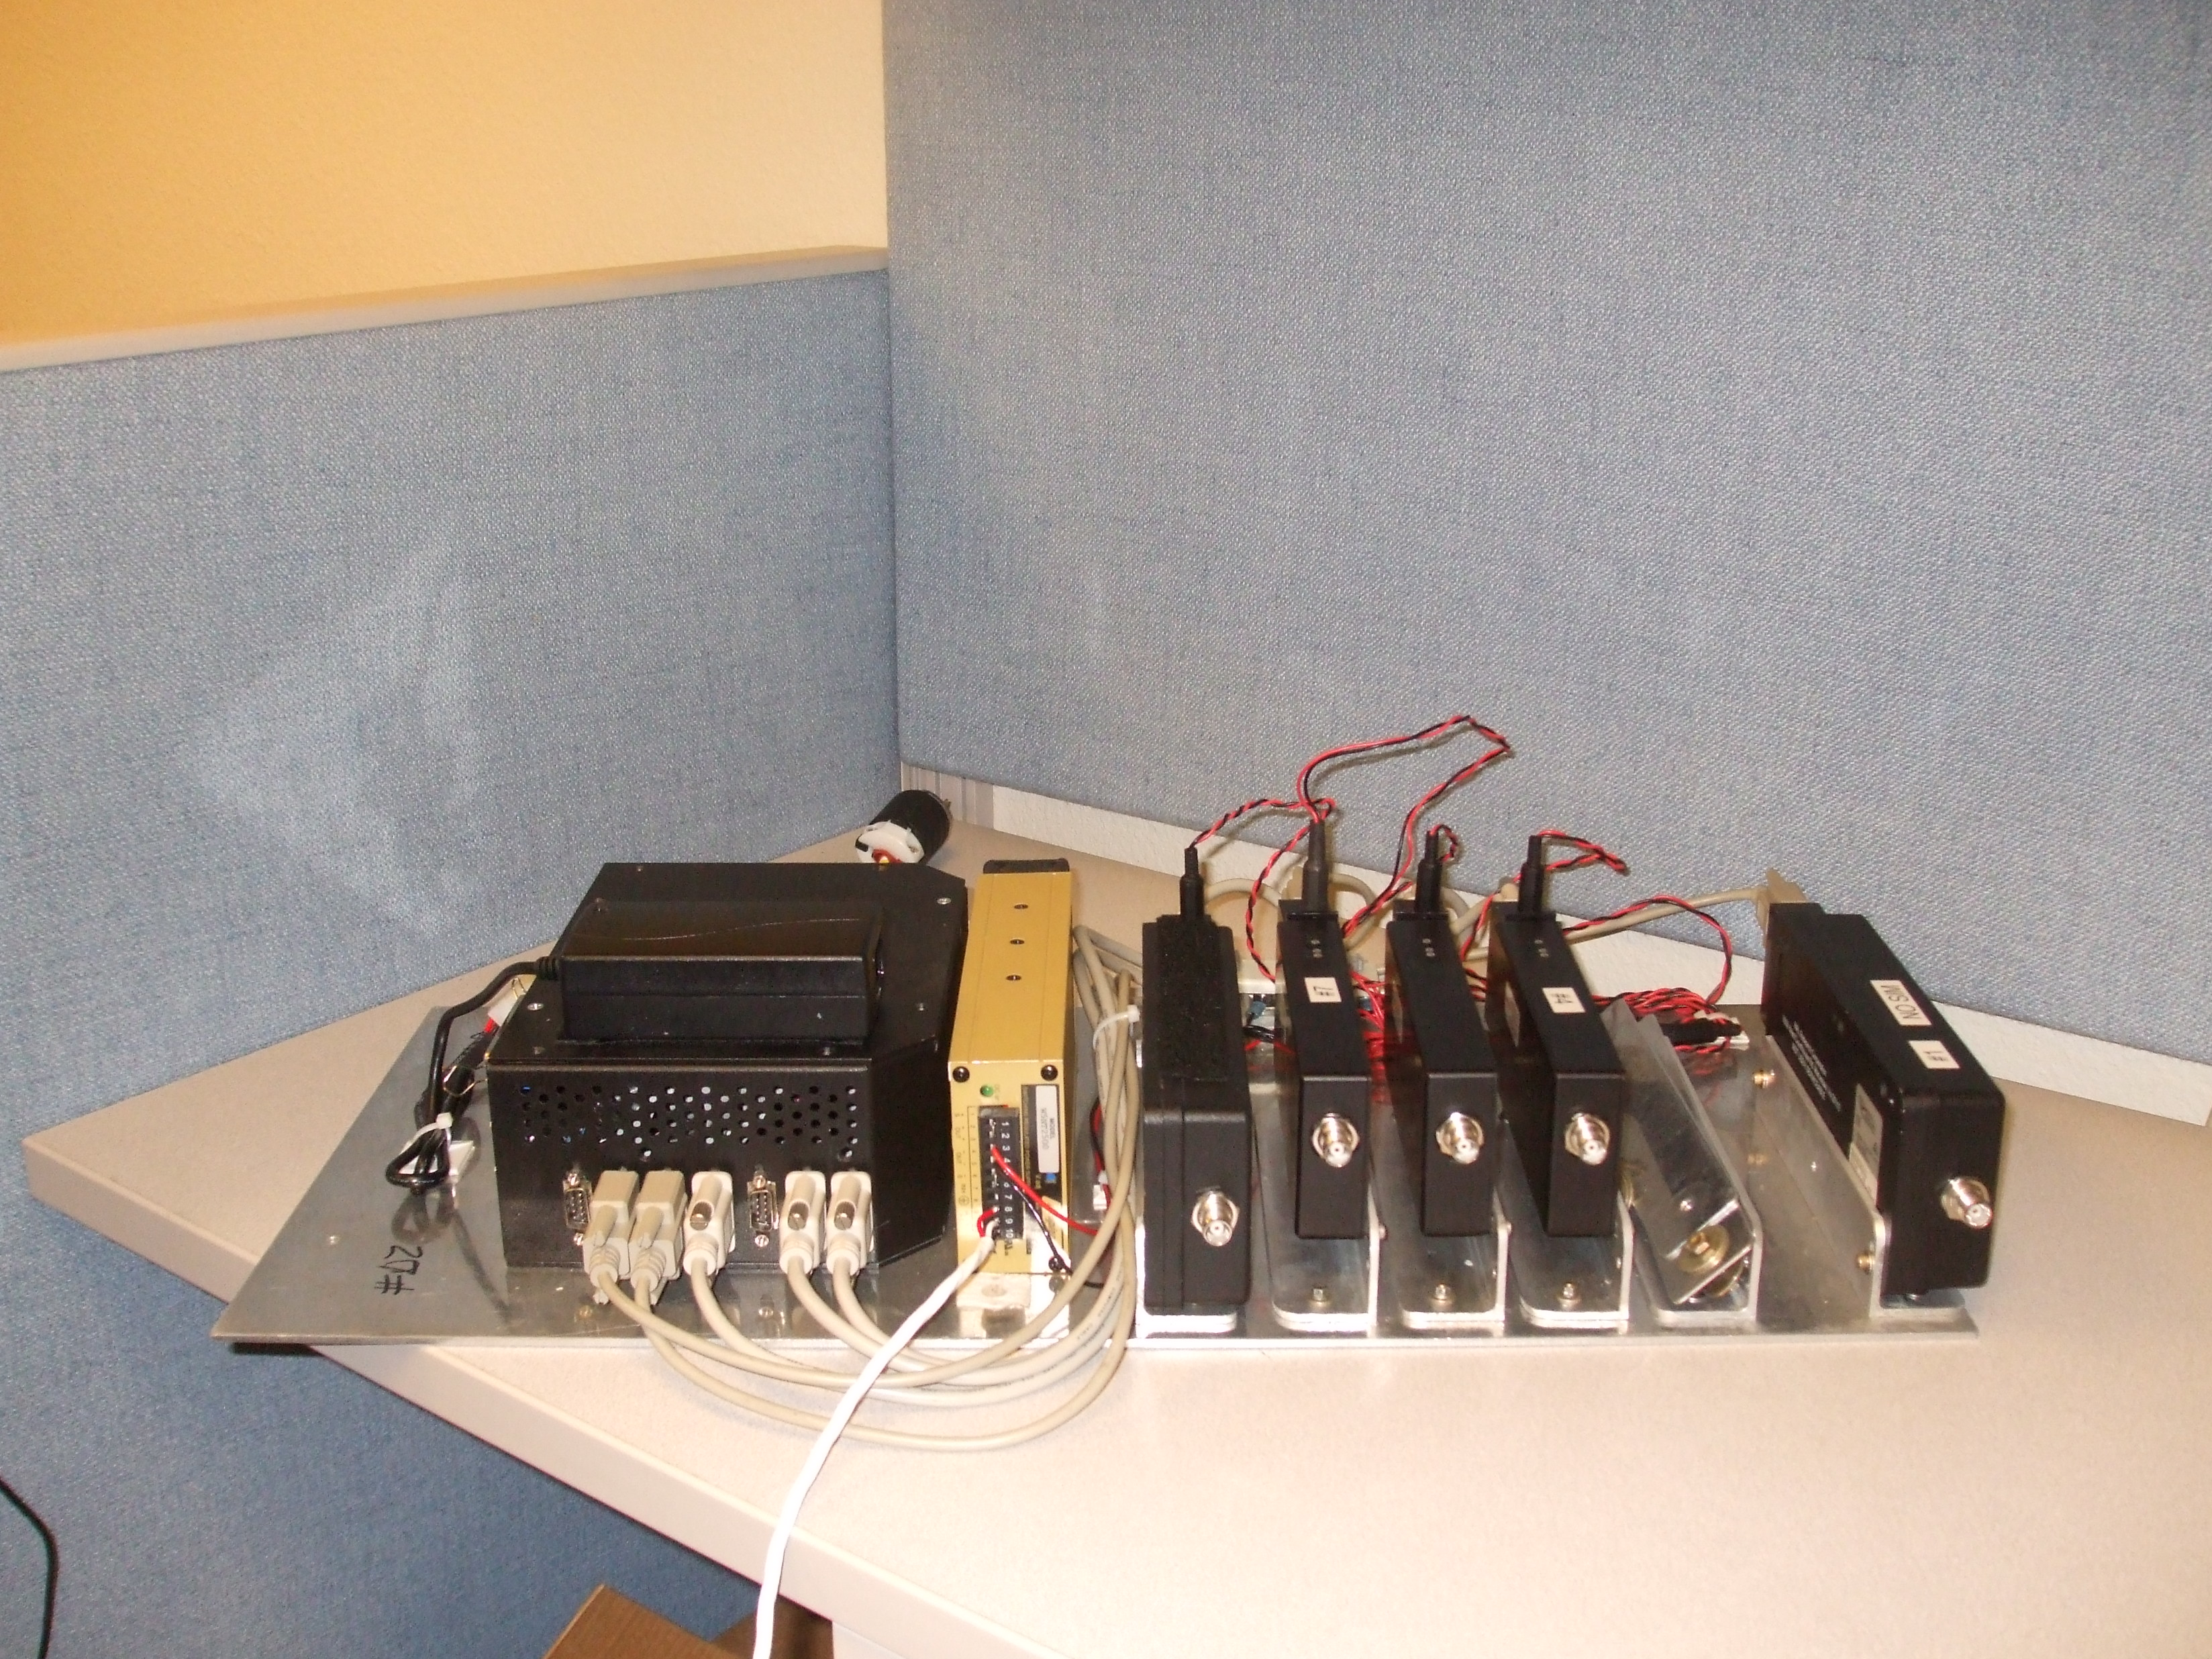 Operation IceBridge's array of Iridium modems, sitting on the desk of NSERC network engineer David Van Gilst.